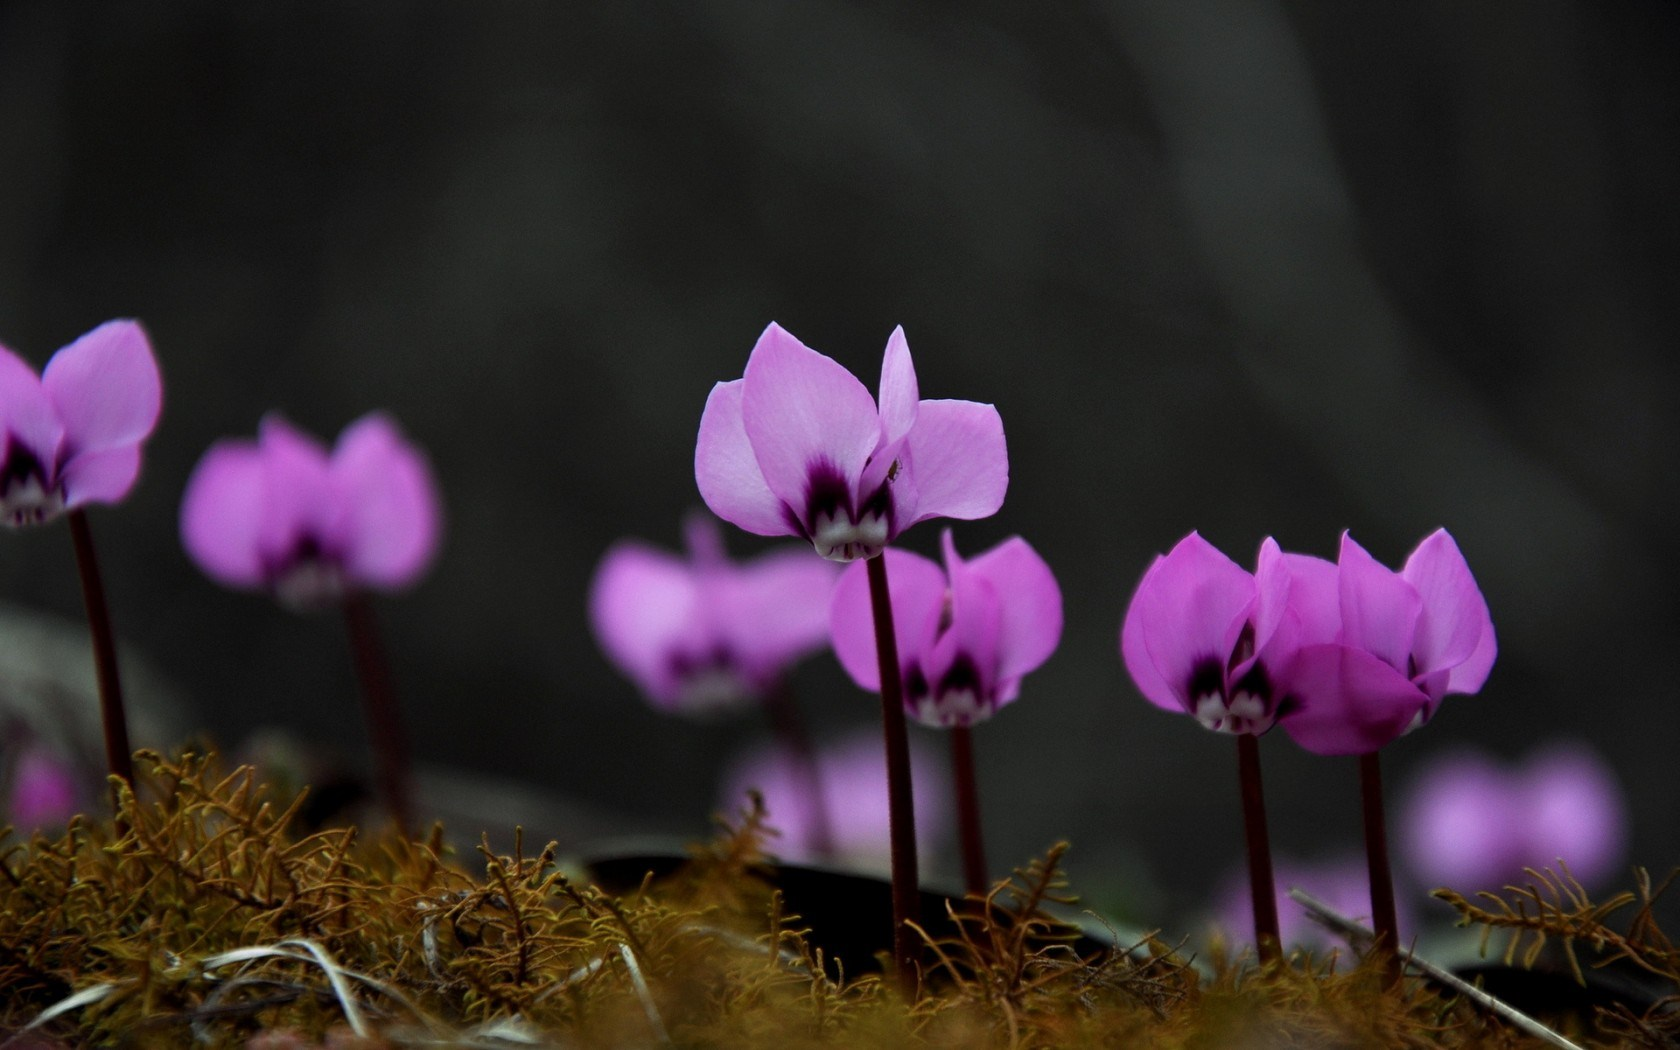 Cyclamen